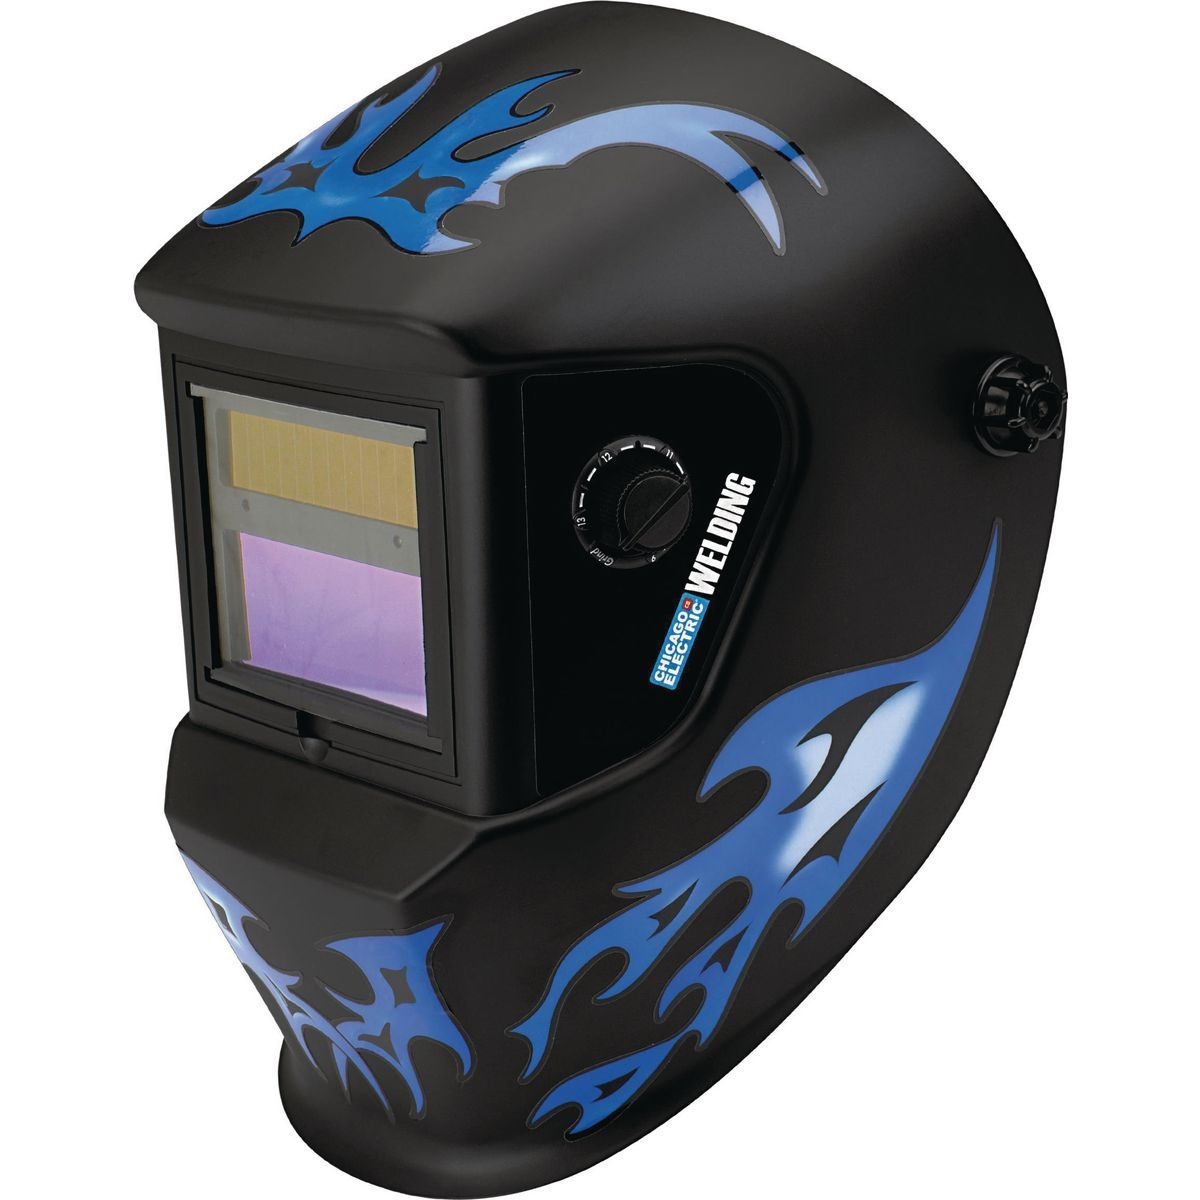 Auto darkening welding helmet with blue flame design